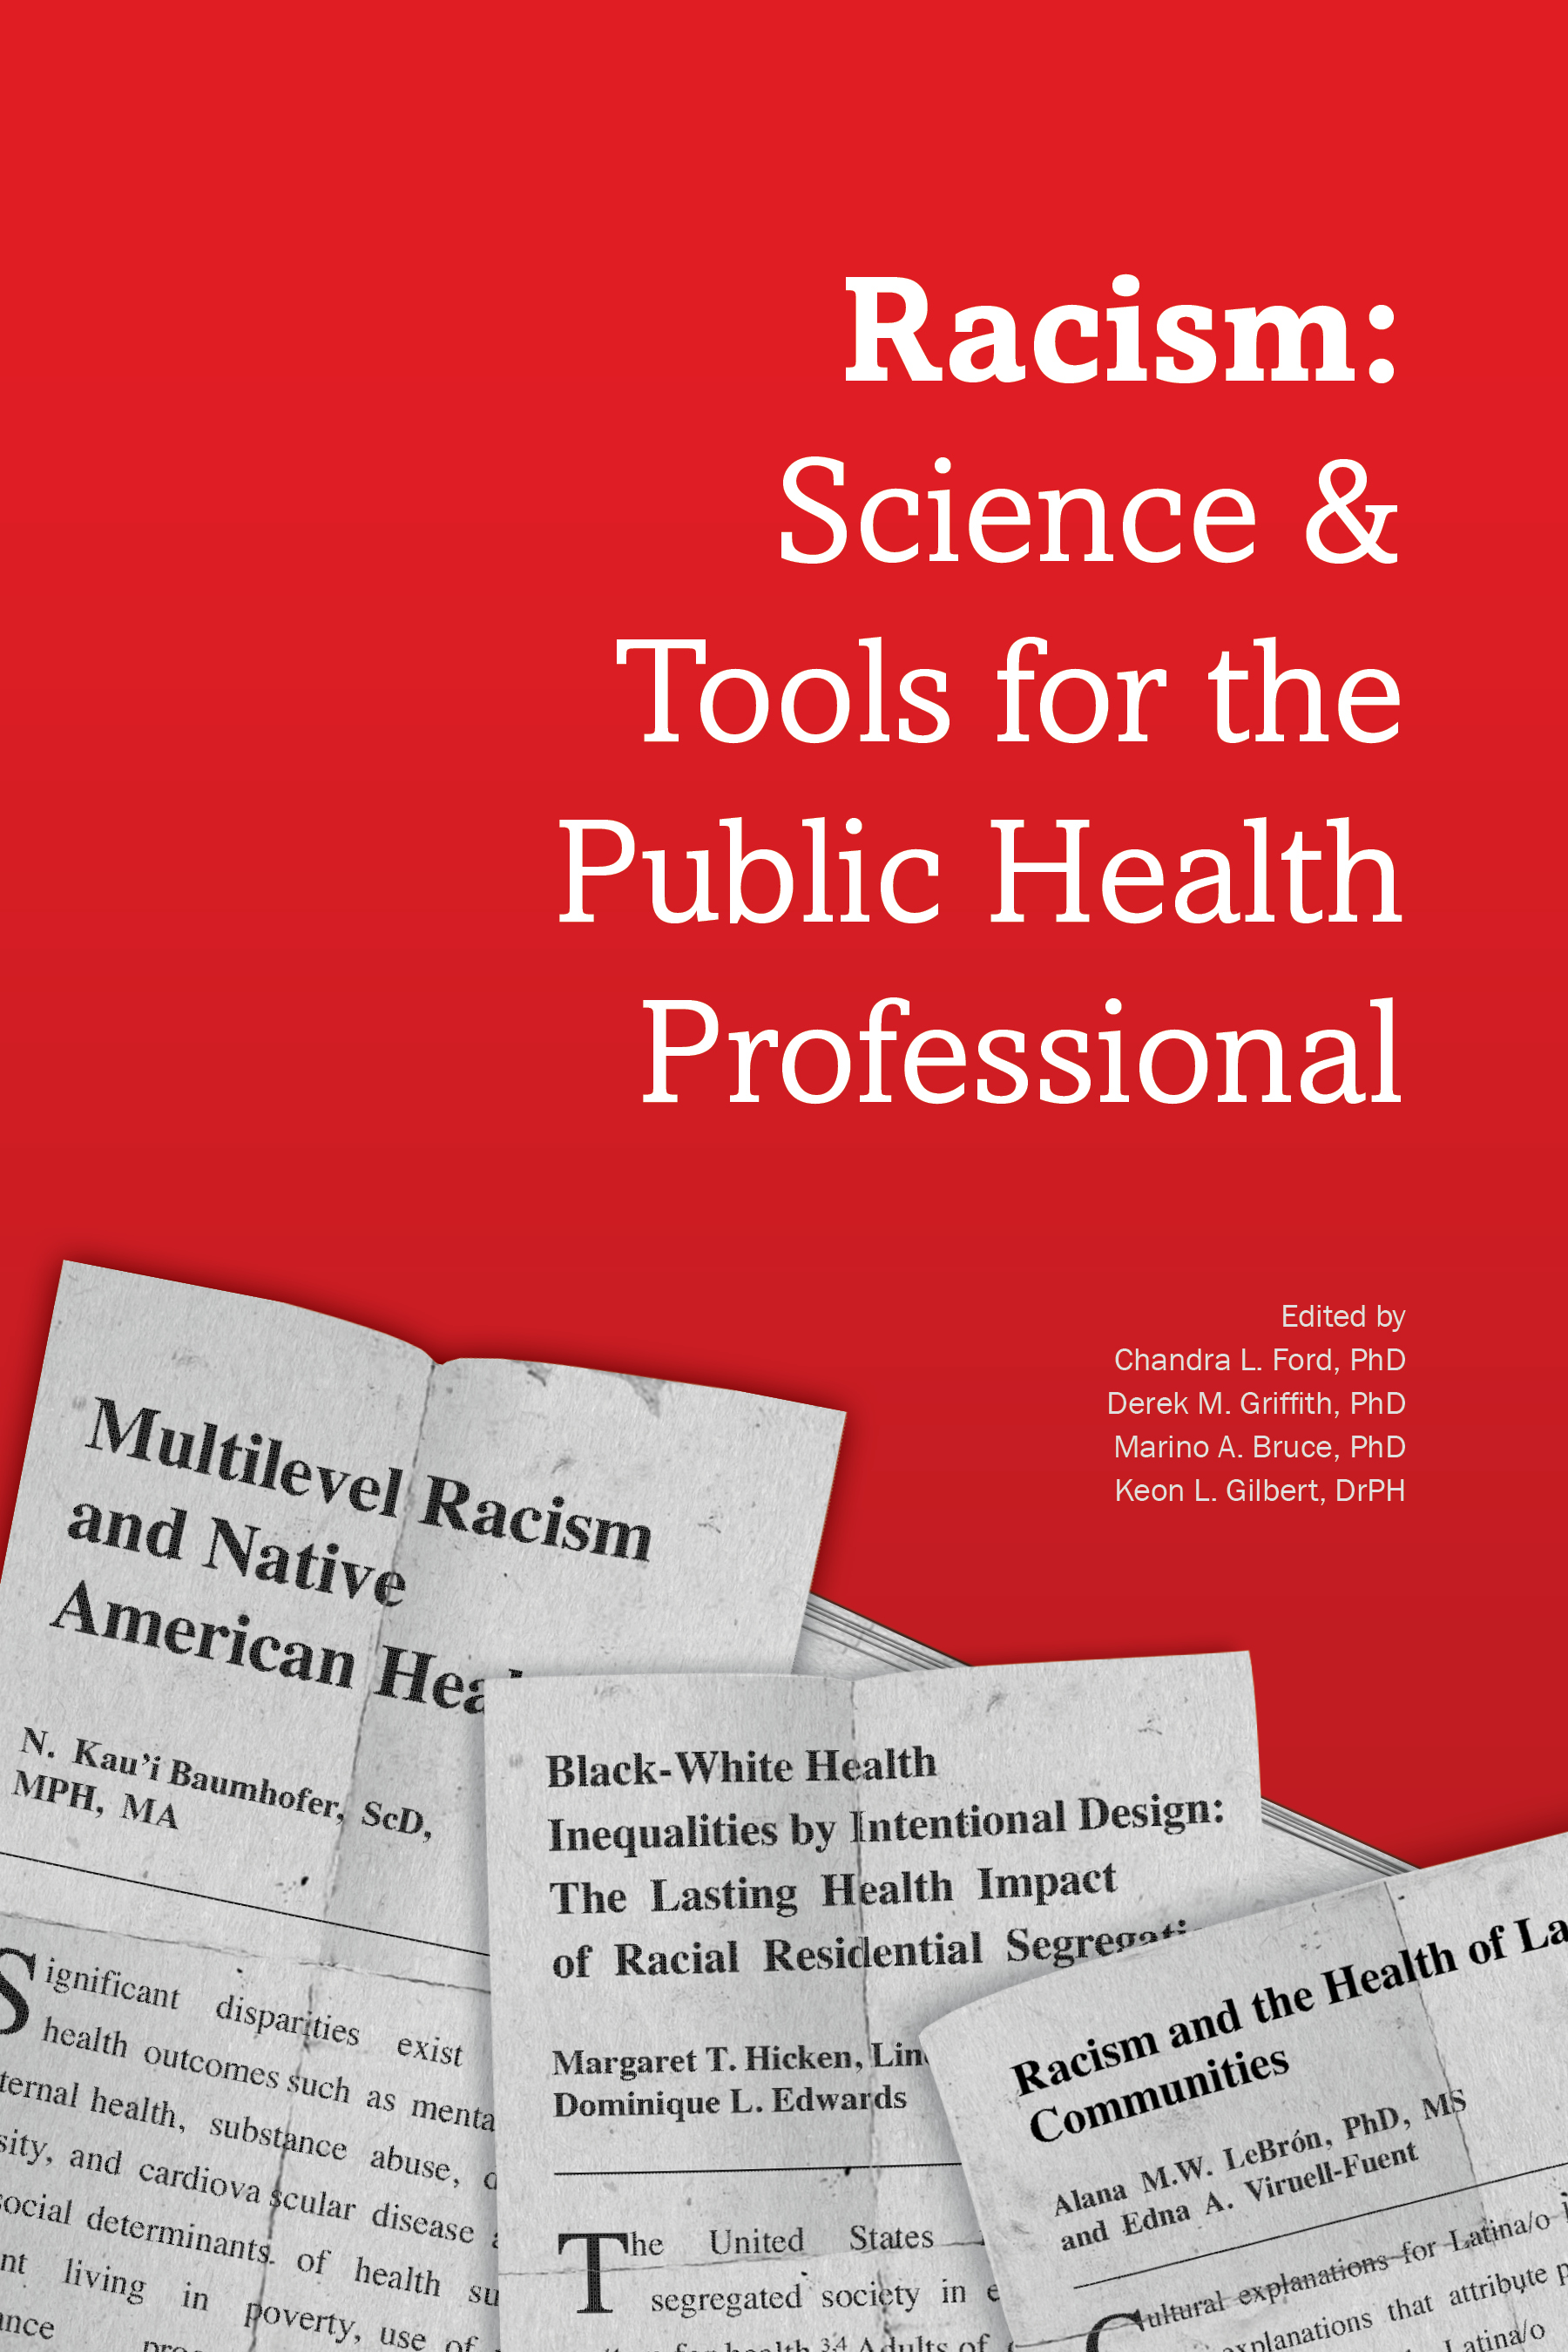 Racism: Science & Tools for the Public Health Professional<BR>Non-Member Price: $75.00<BR>Member Price: $52.50